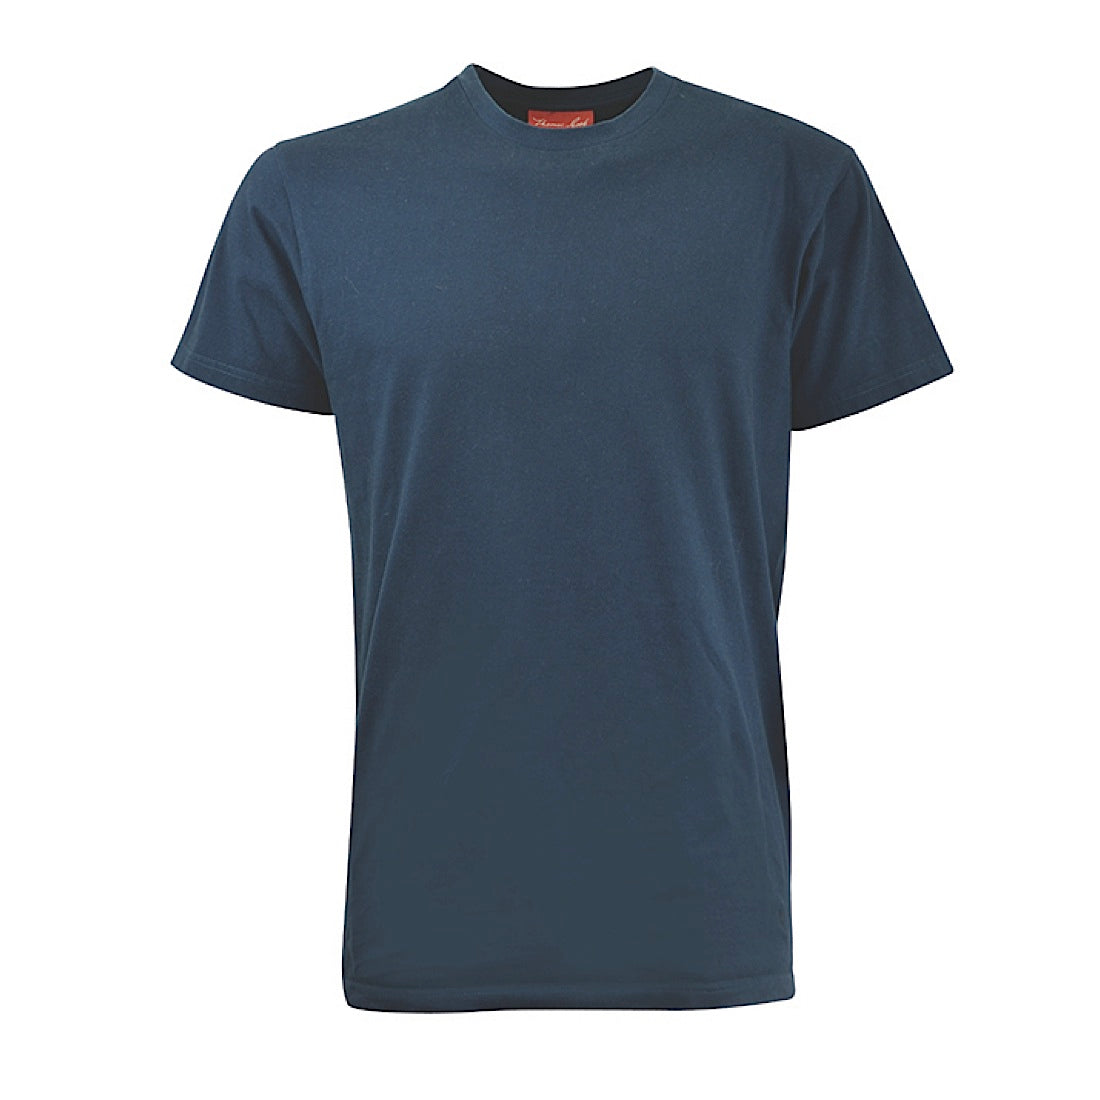 Thomas Cook Mens Classic Fit T-Shirt Navy